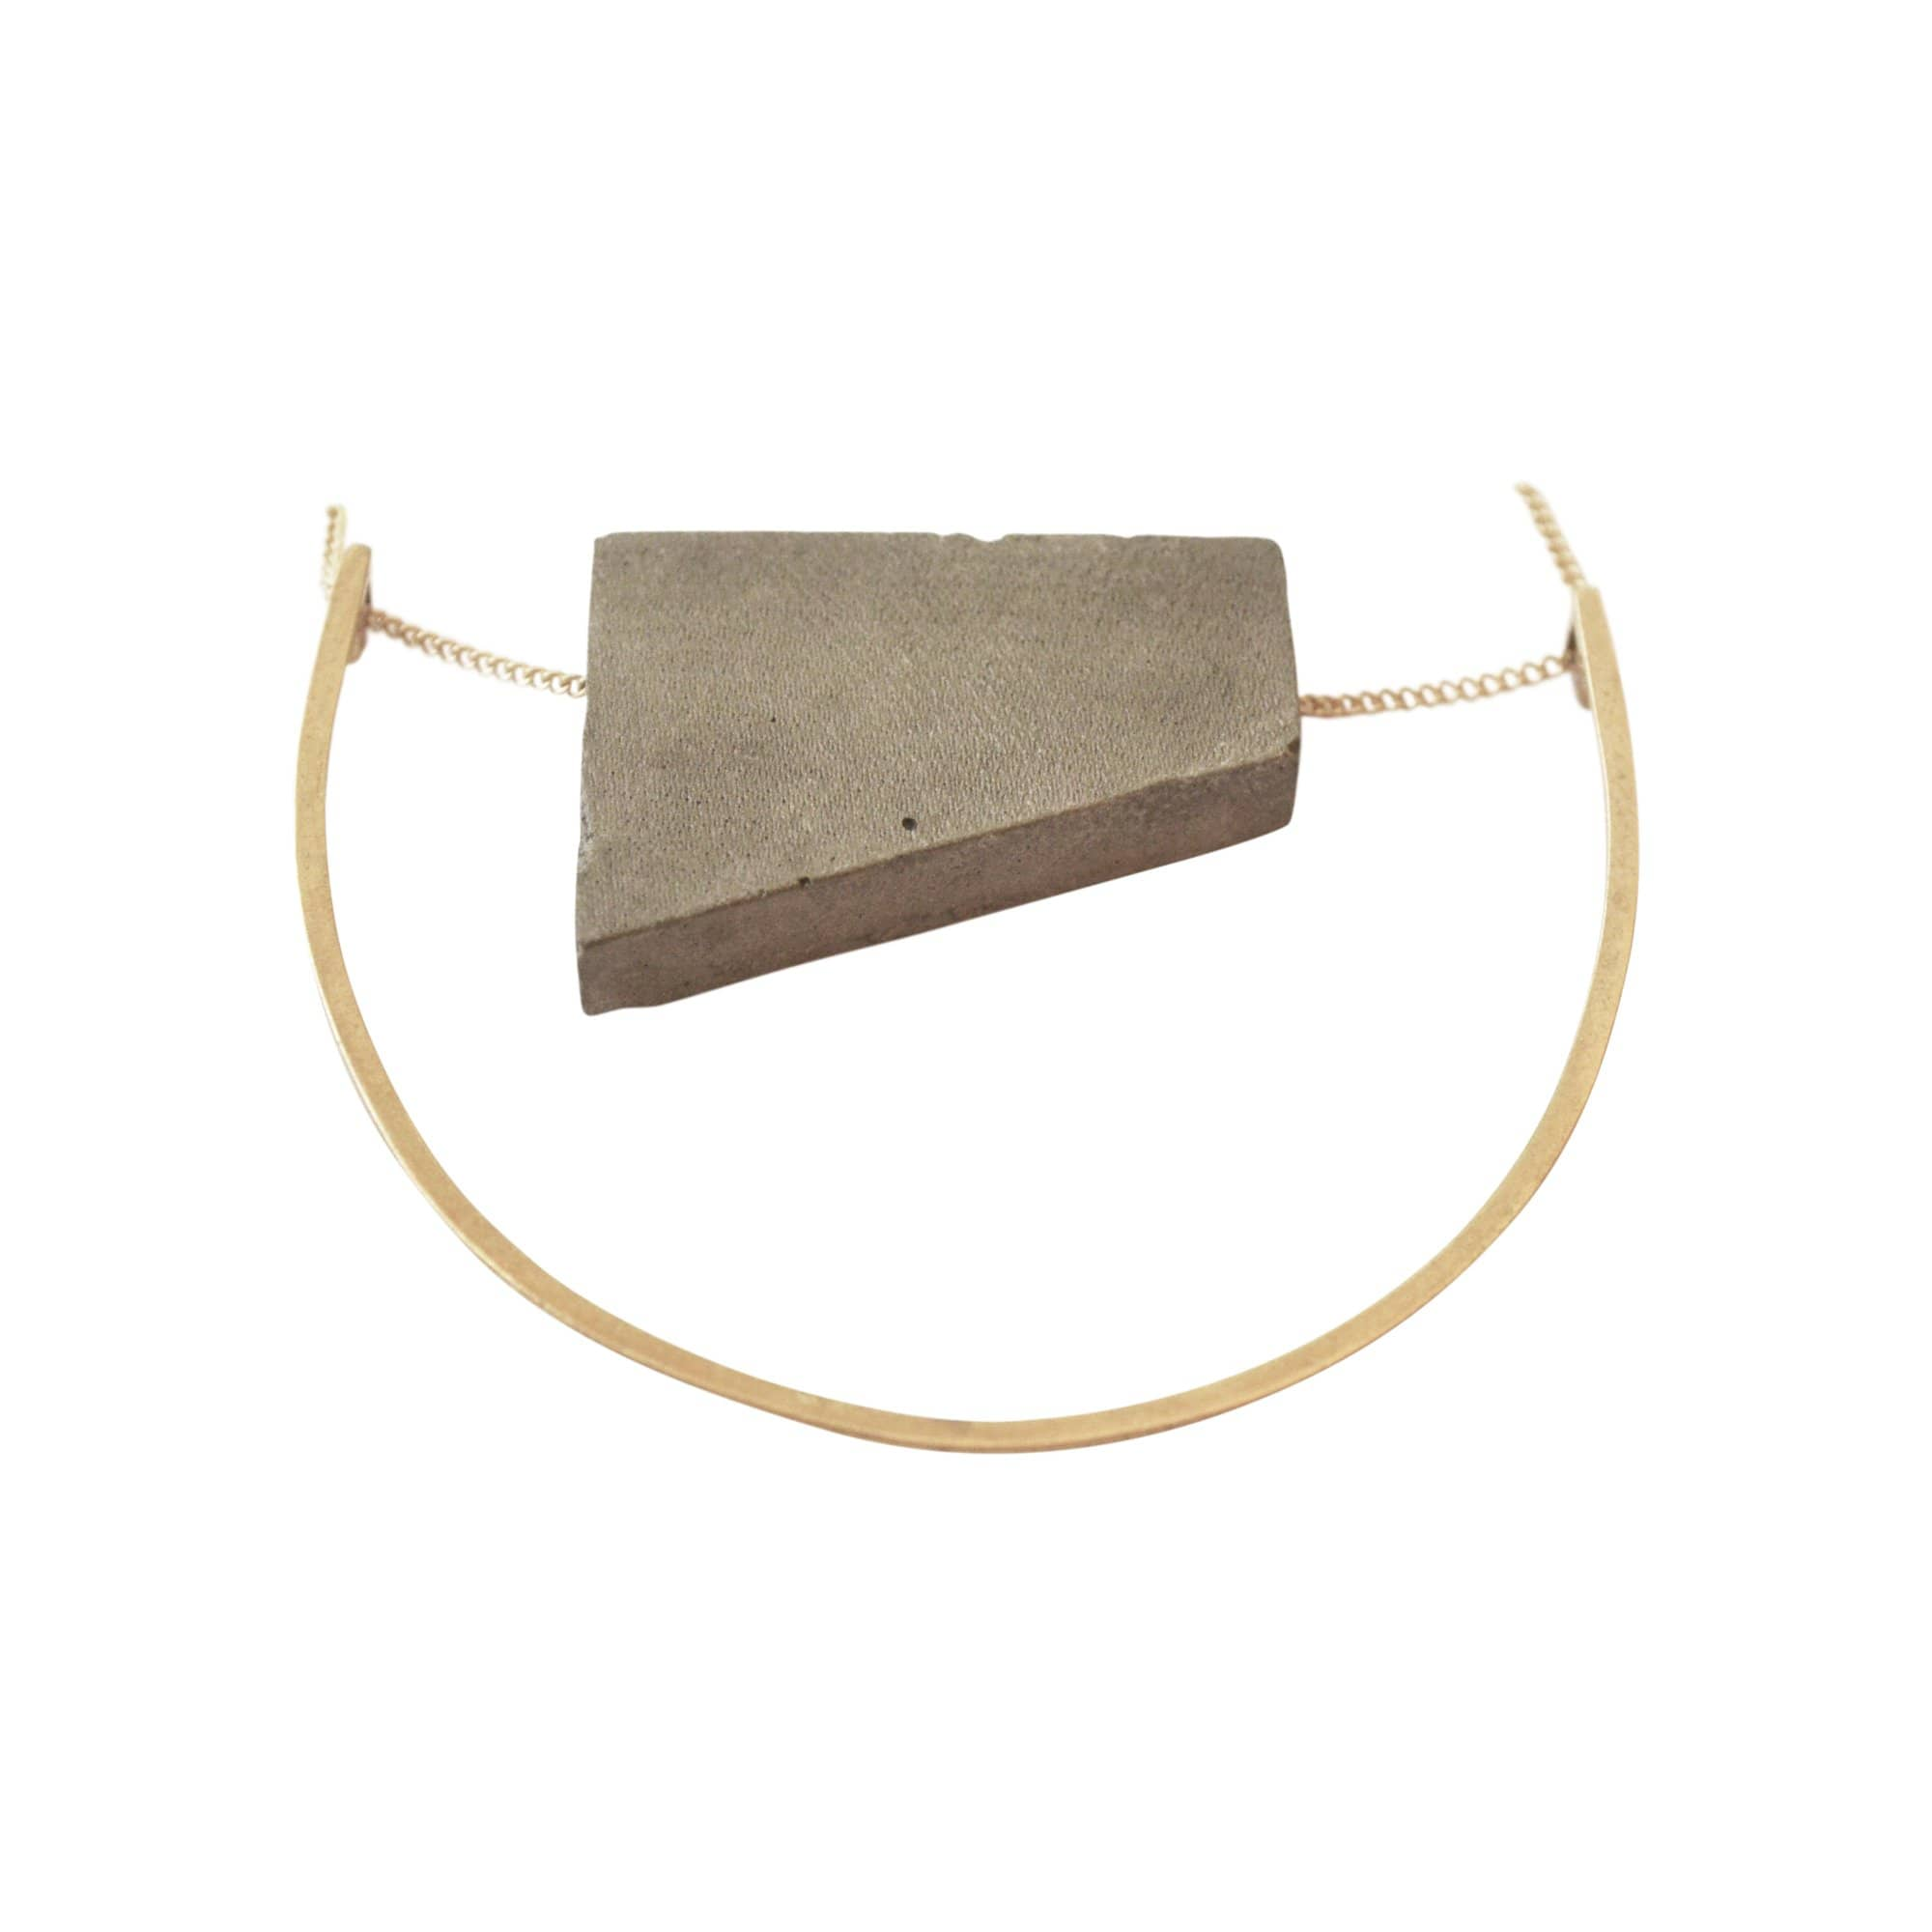 Lily Toya Necklaces Float U Concrete Necklace